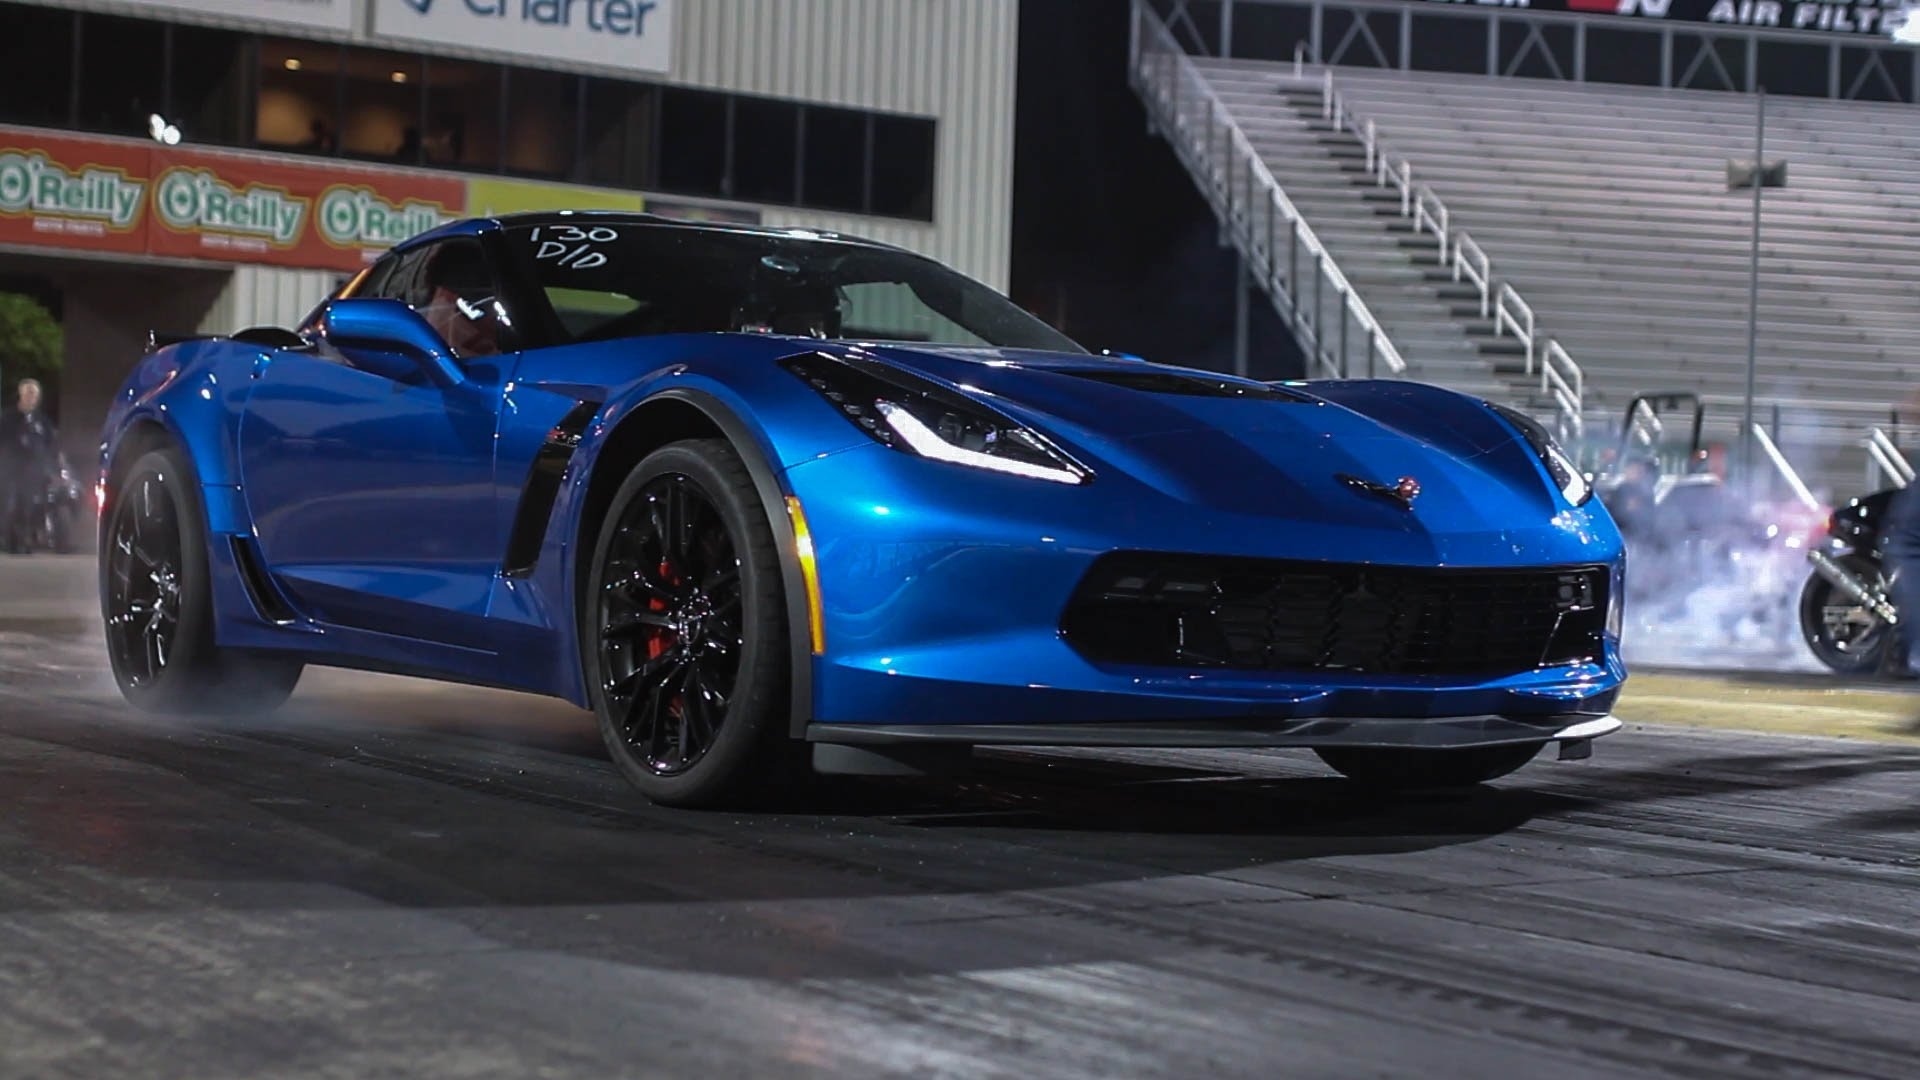 HER 2015 C7 Corvette Z06 runs 10s 100% STOCK!!!